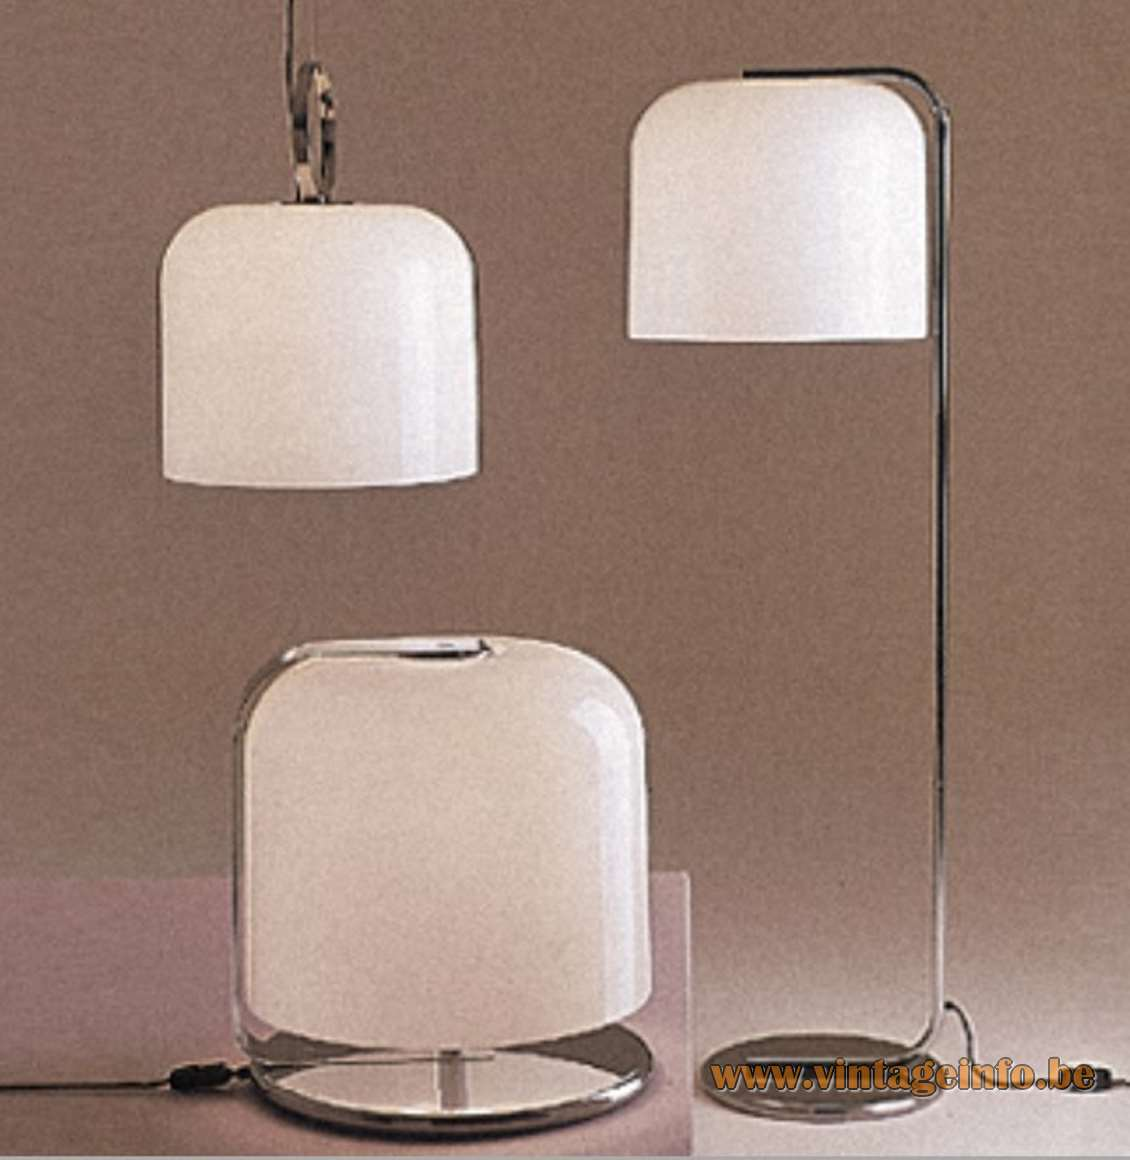 Harvey Guzzini Alvise Pendant Table Floor Lamp Luigi Massini chrome white acrylic MCM 1966